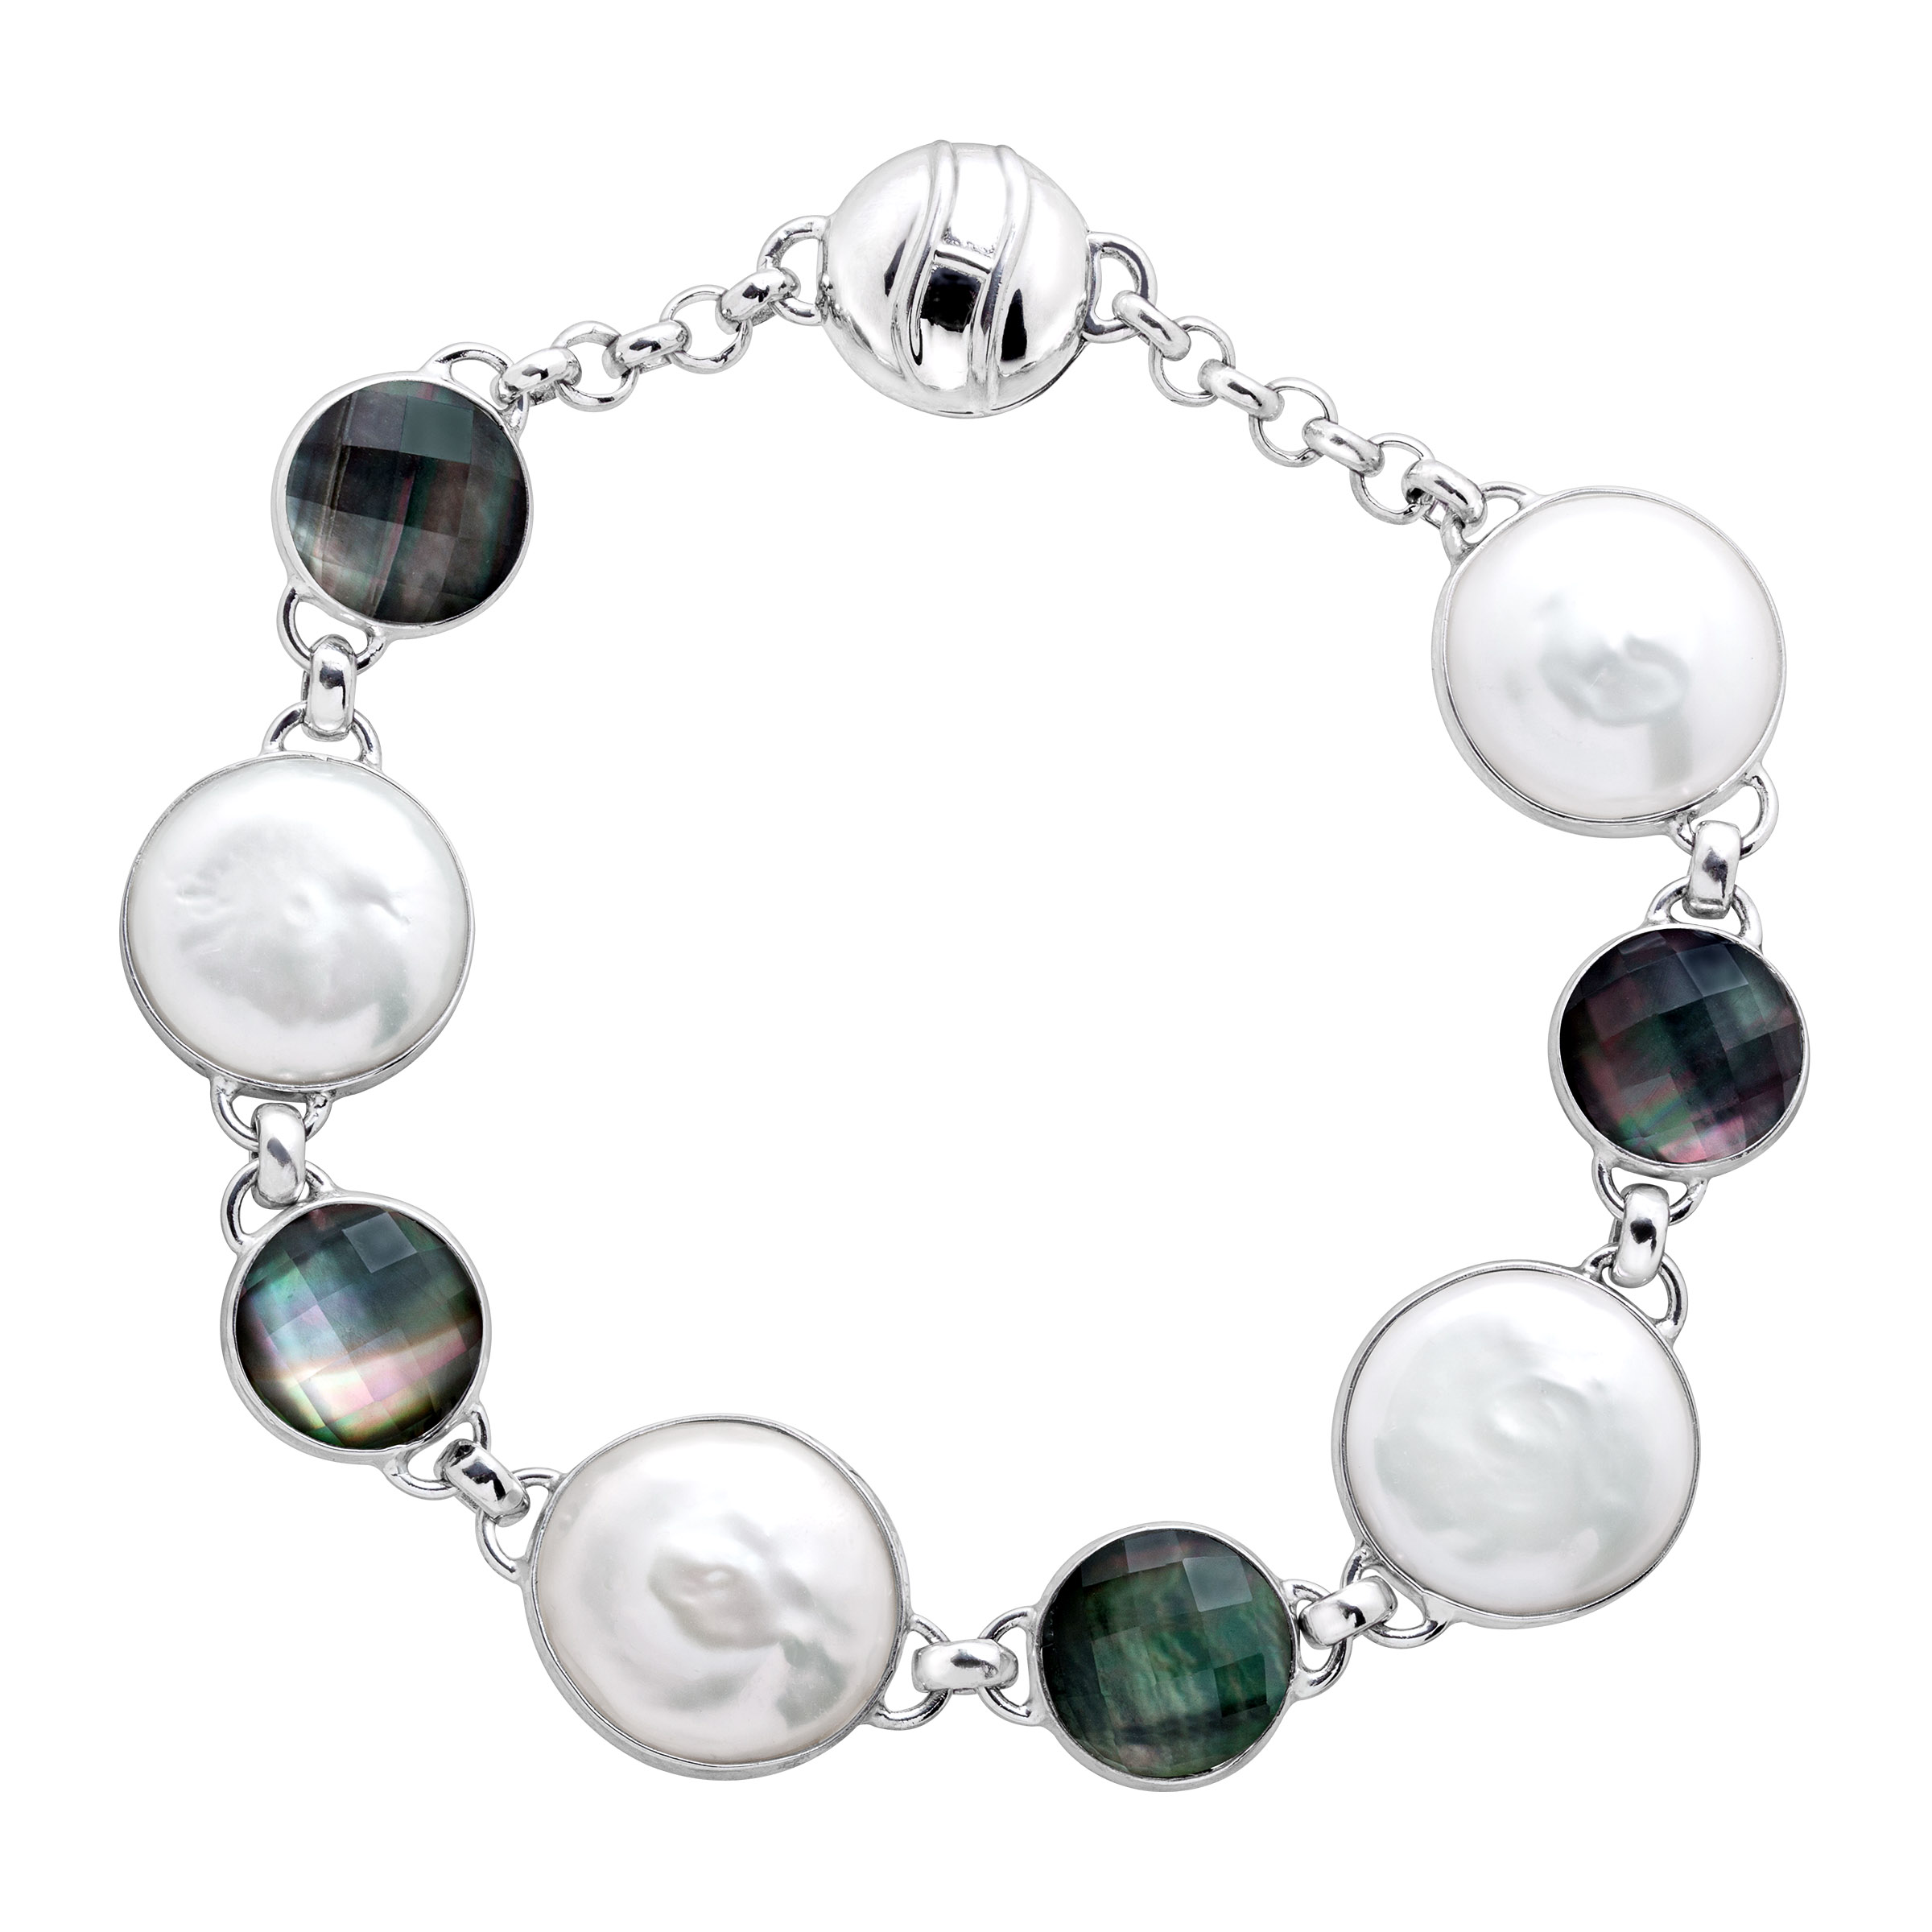 Honora Freshwater Coin Pearl & Black Mother-of-Pearl Doublet Link Bracelet in Sterling Silver by Richline Group